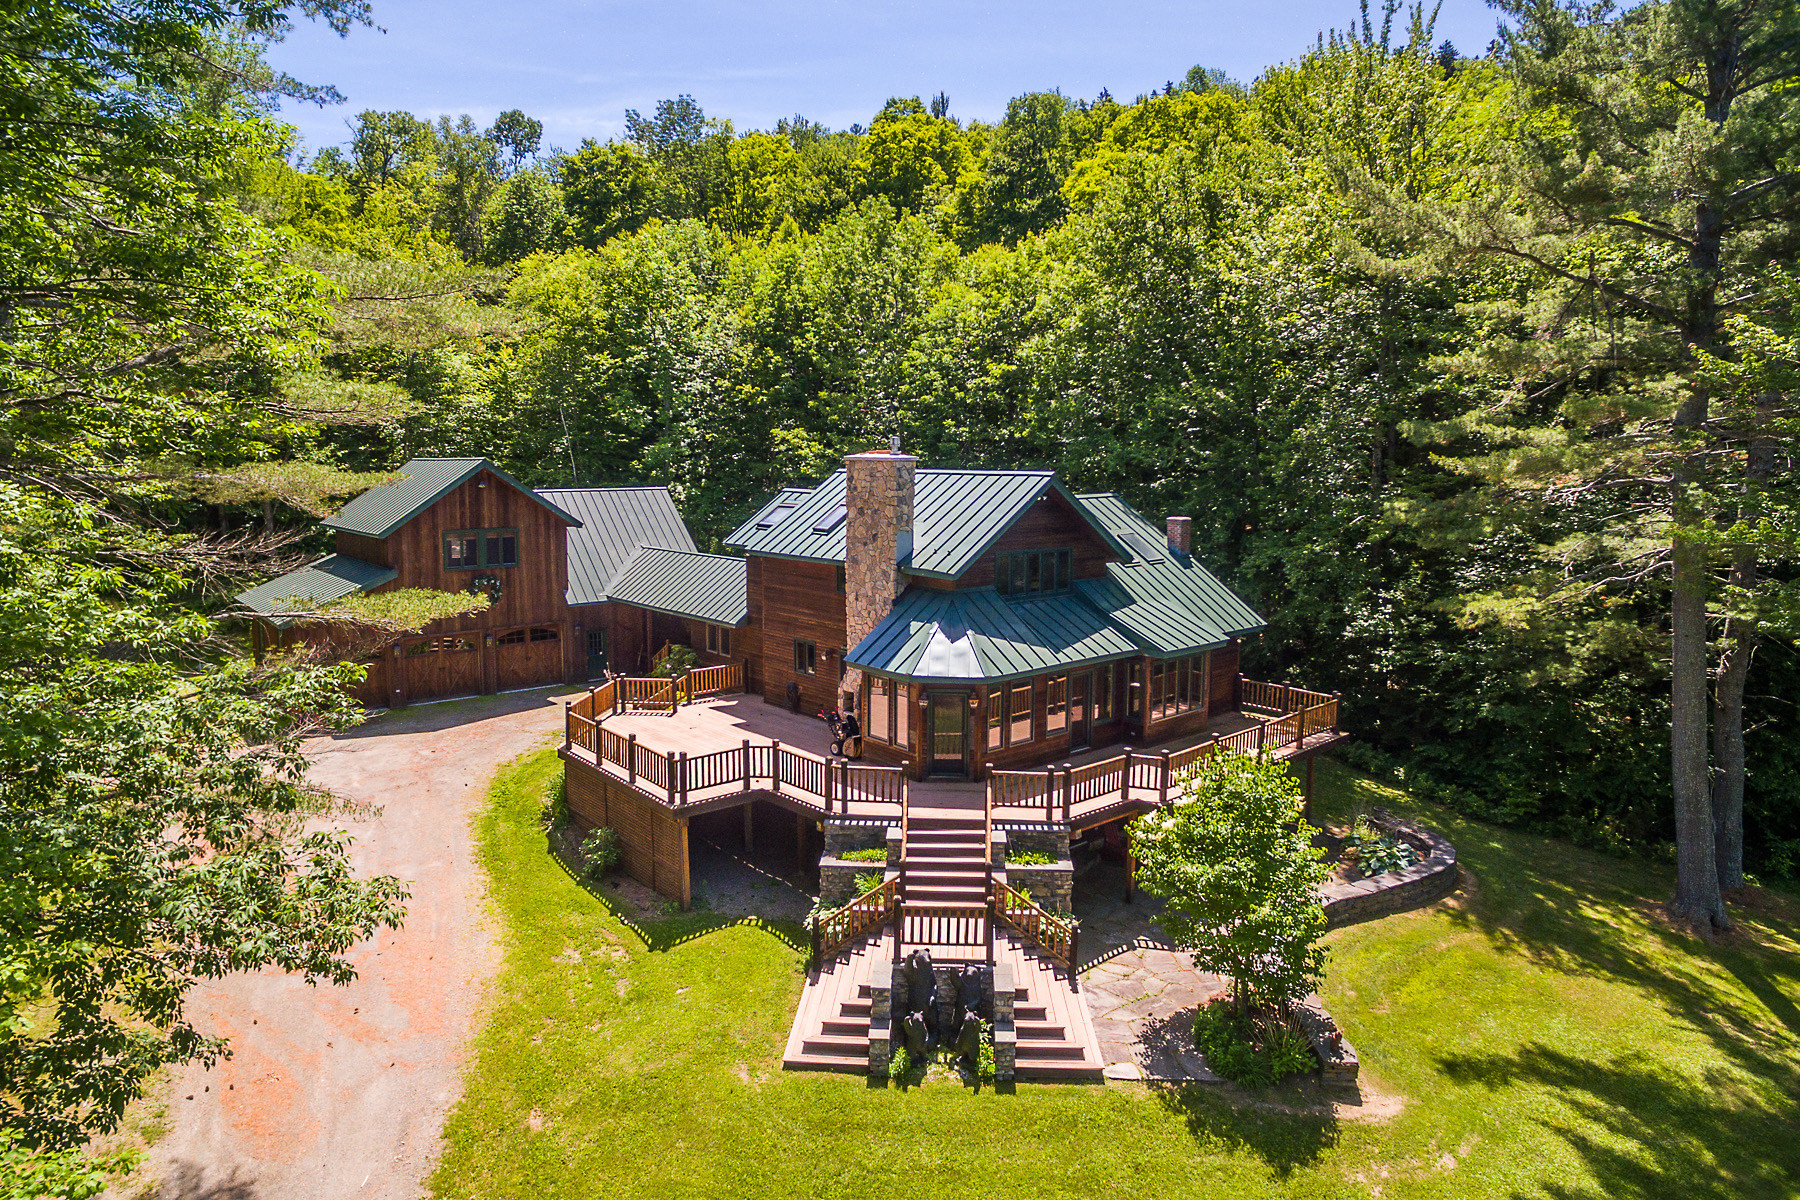 Single Family Home for Sale at Custom Built Post and Beam 3703 Popple Dungeon Rd Chester, Vermont 05143 United States